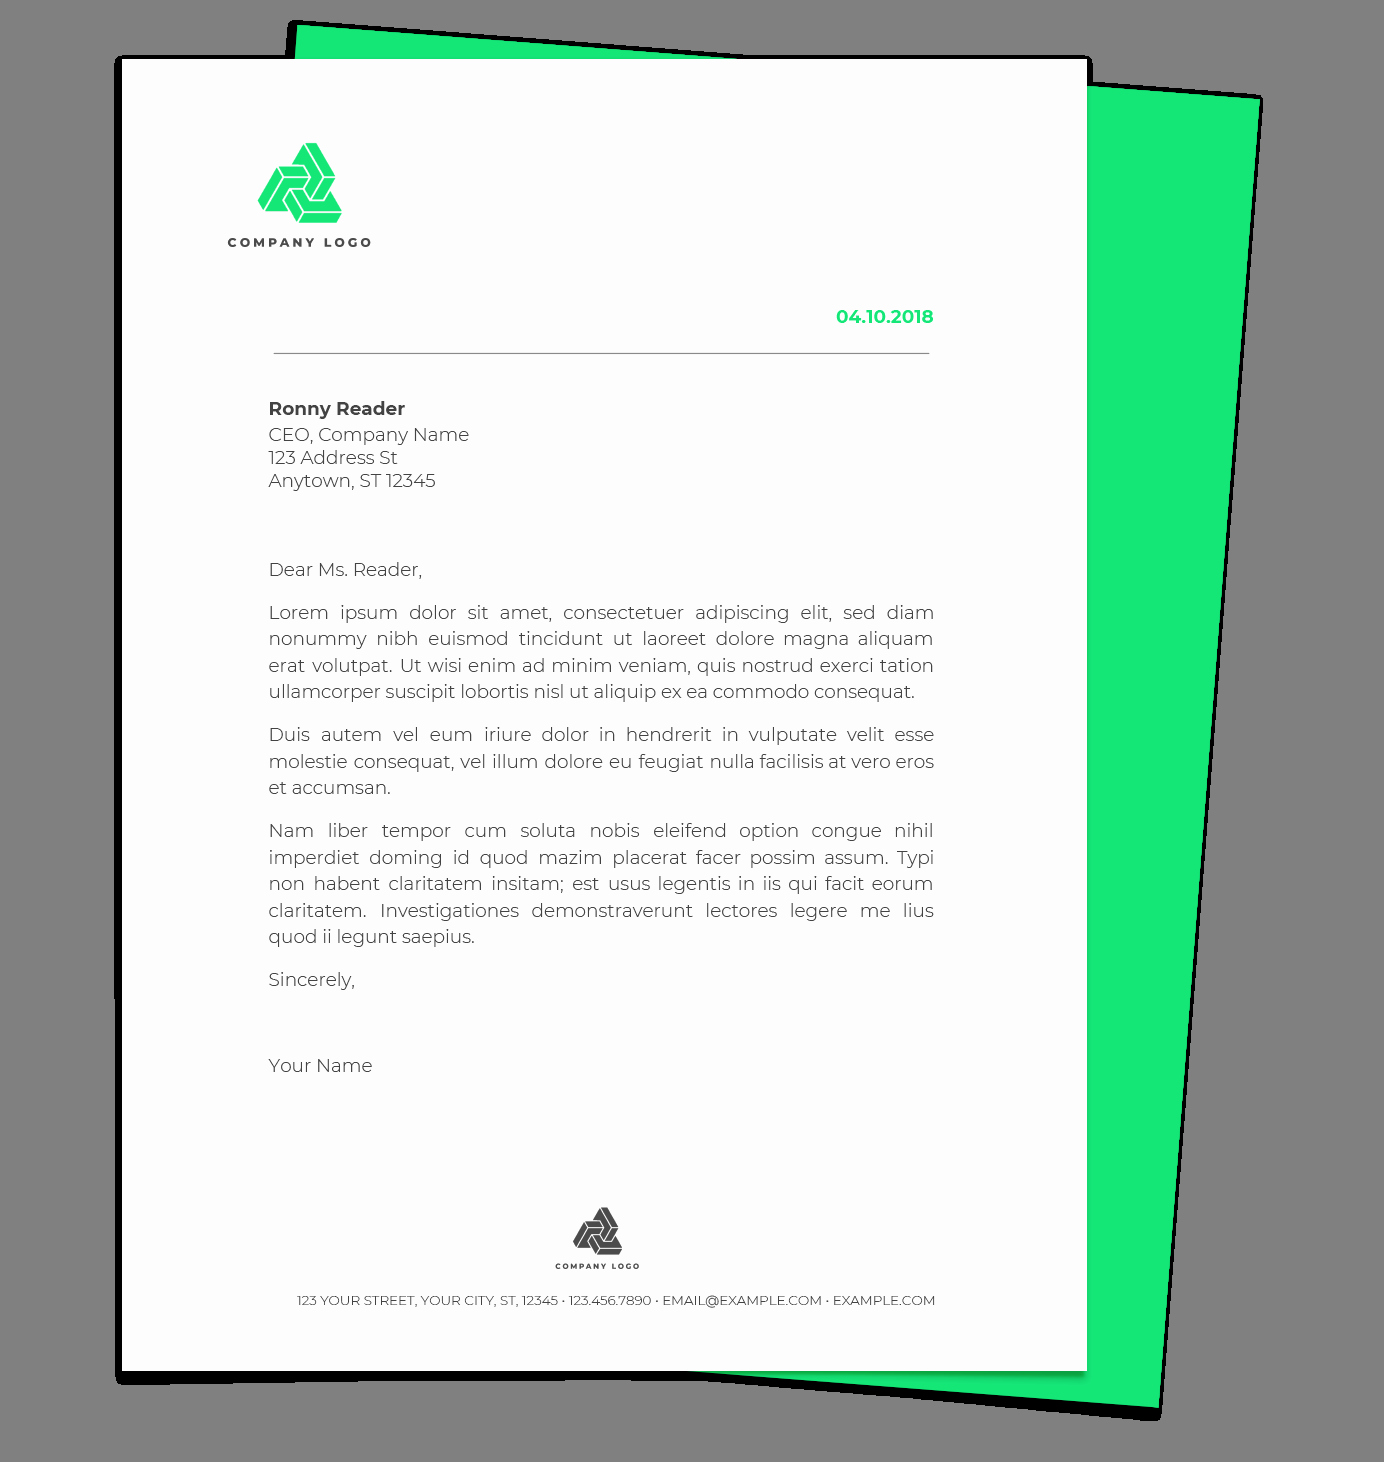 Google Docs Letterhead Template Elegant Free Letterhead Templates for Google Docs and Word